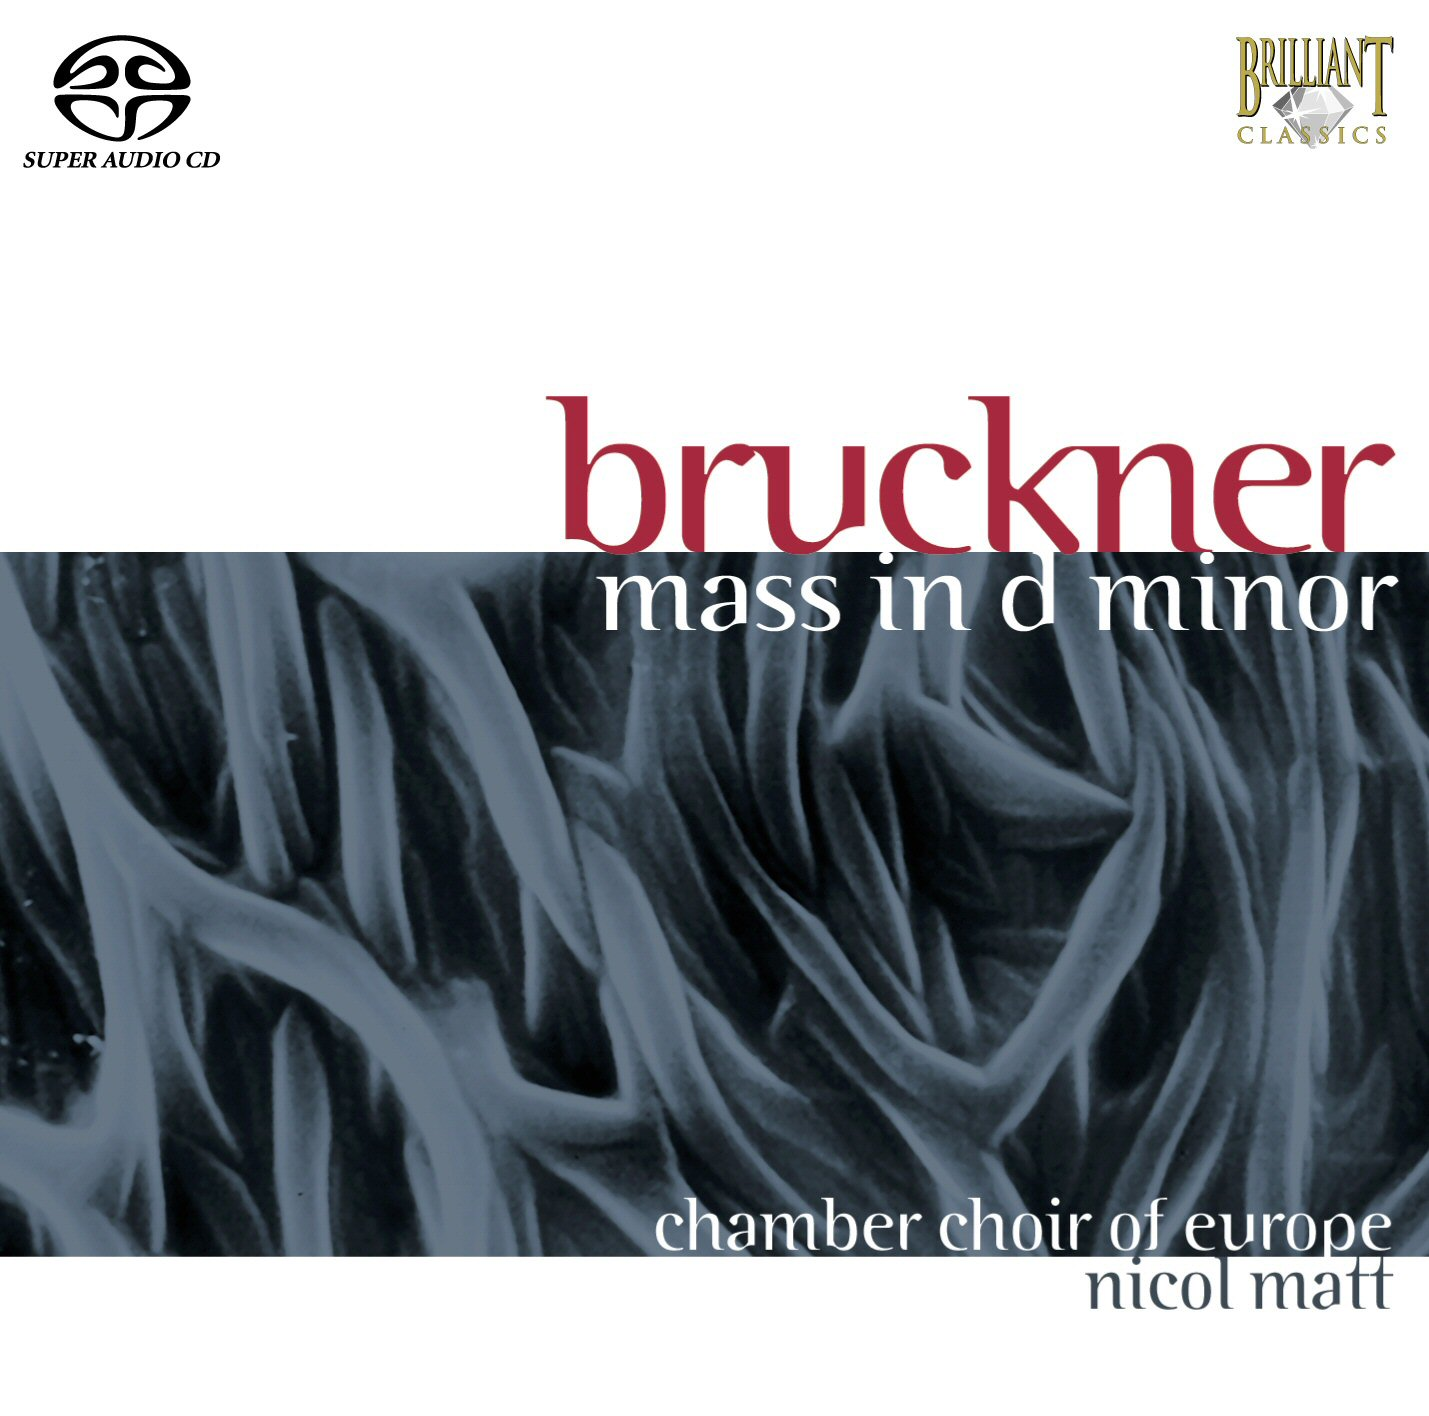 Bruckner Mass in d minor